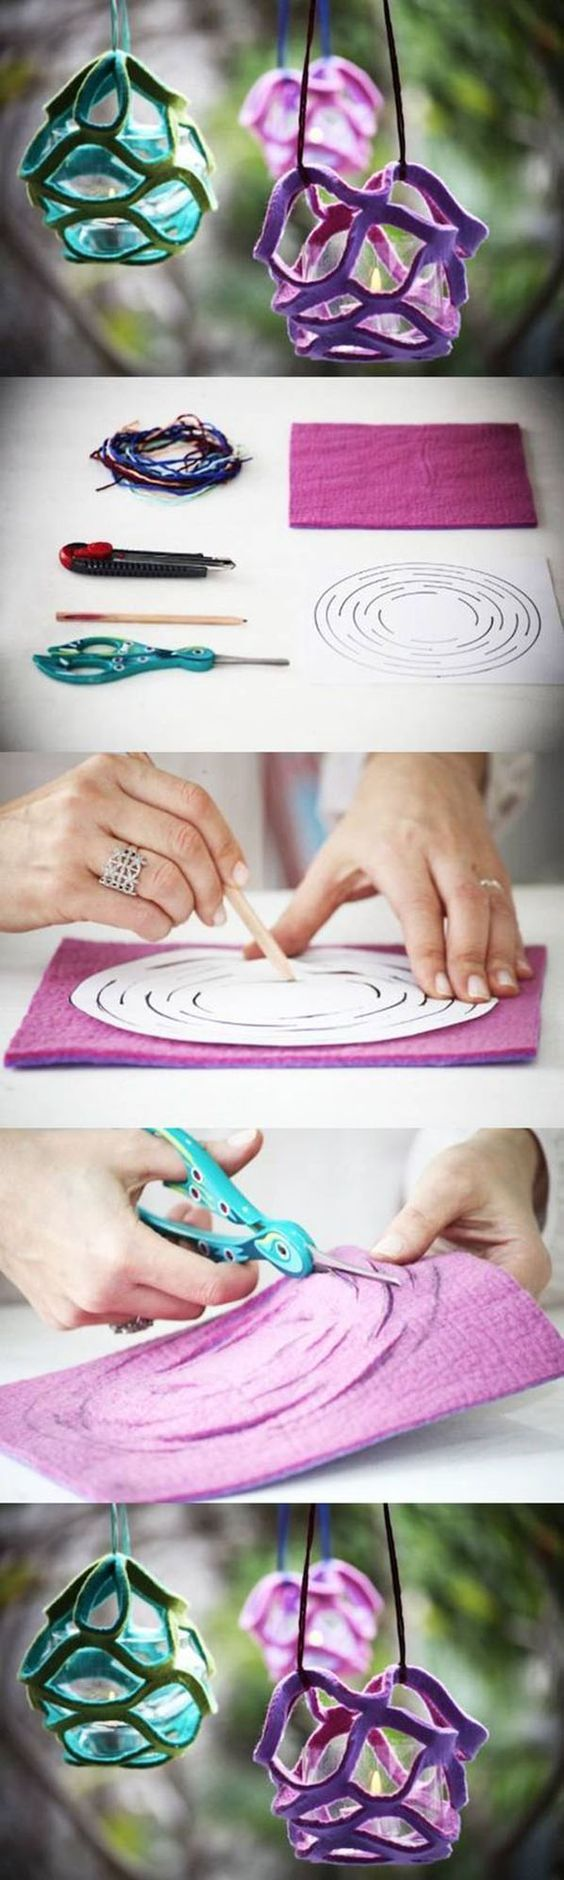 So Beautiful Craft | DIY & Crafts Tutorials: